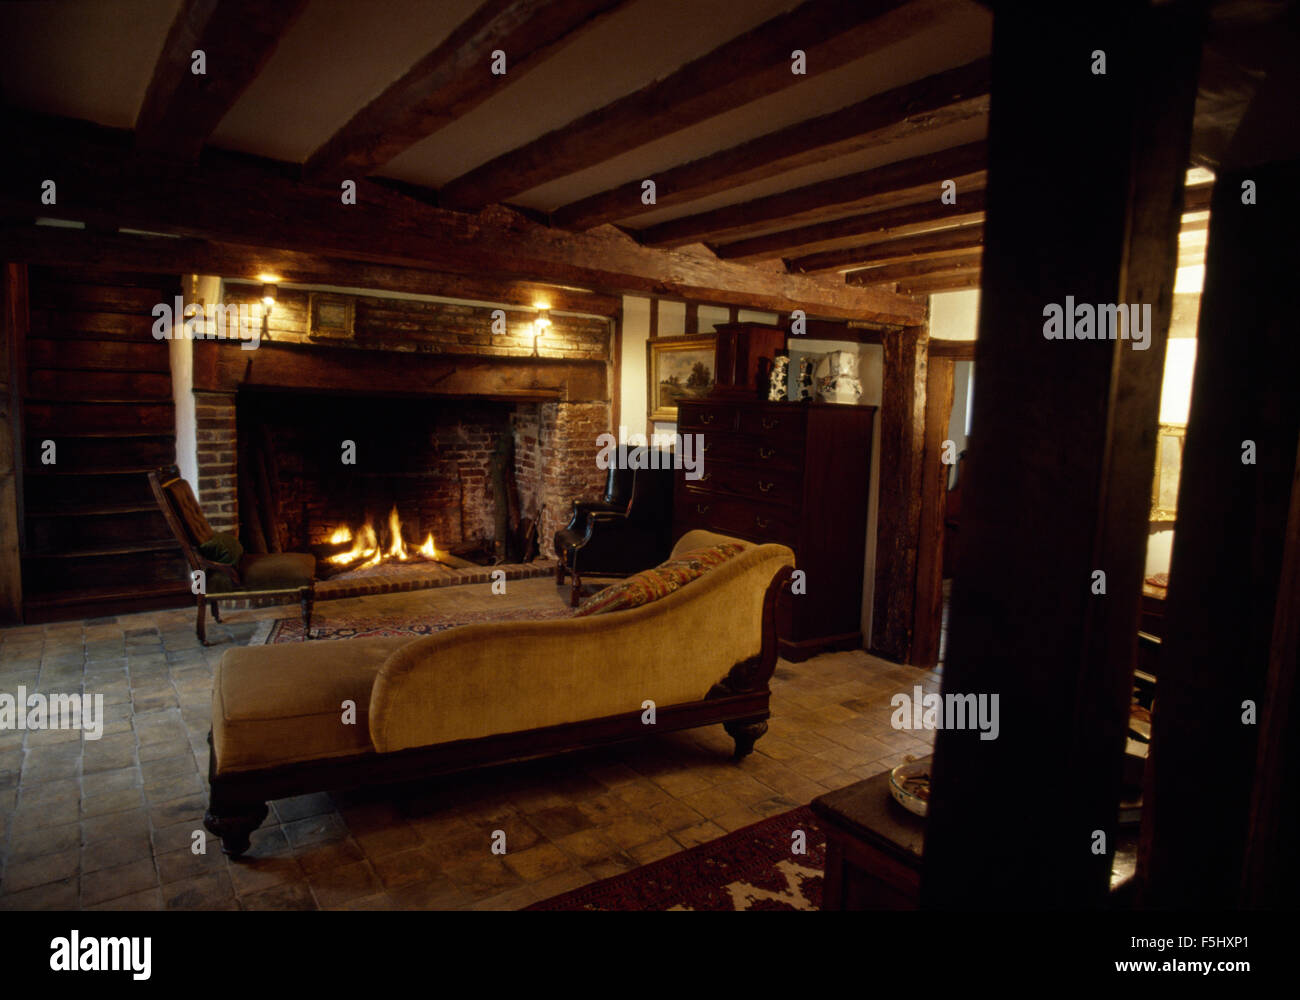 Stock Photo - Velvet chaise longue in old fashioned living room with inglenook fireplace : old fashioned chaise lounge - Sectionals, Sofas & Couches